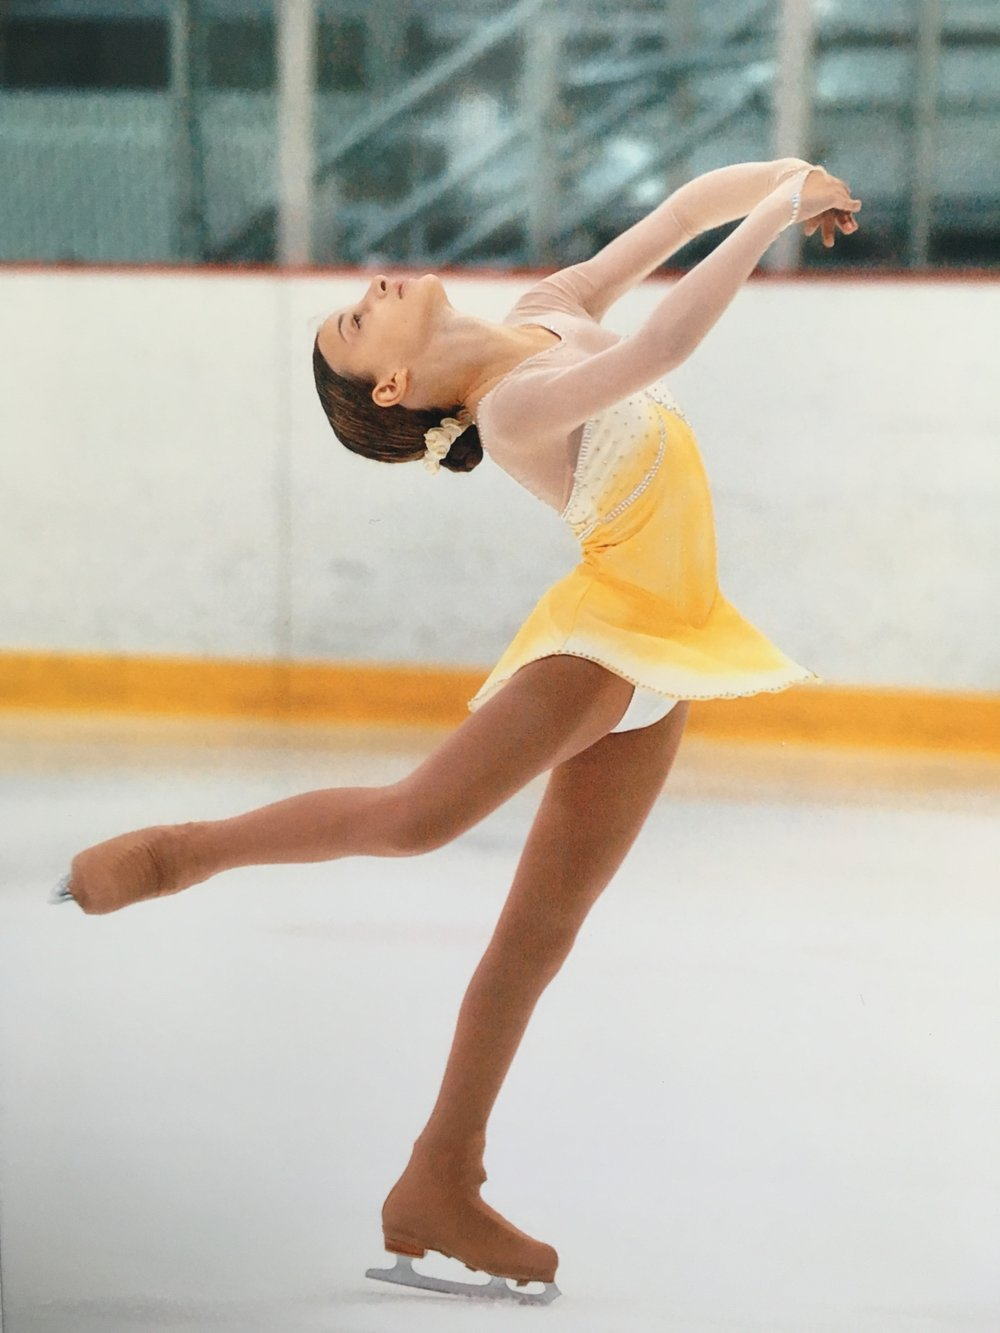 Laura_Snyderman_skating1.jpg